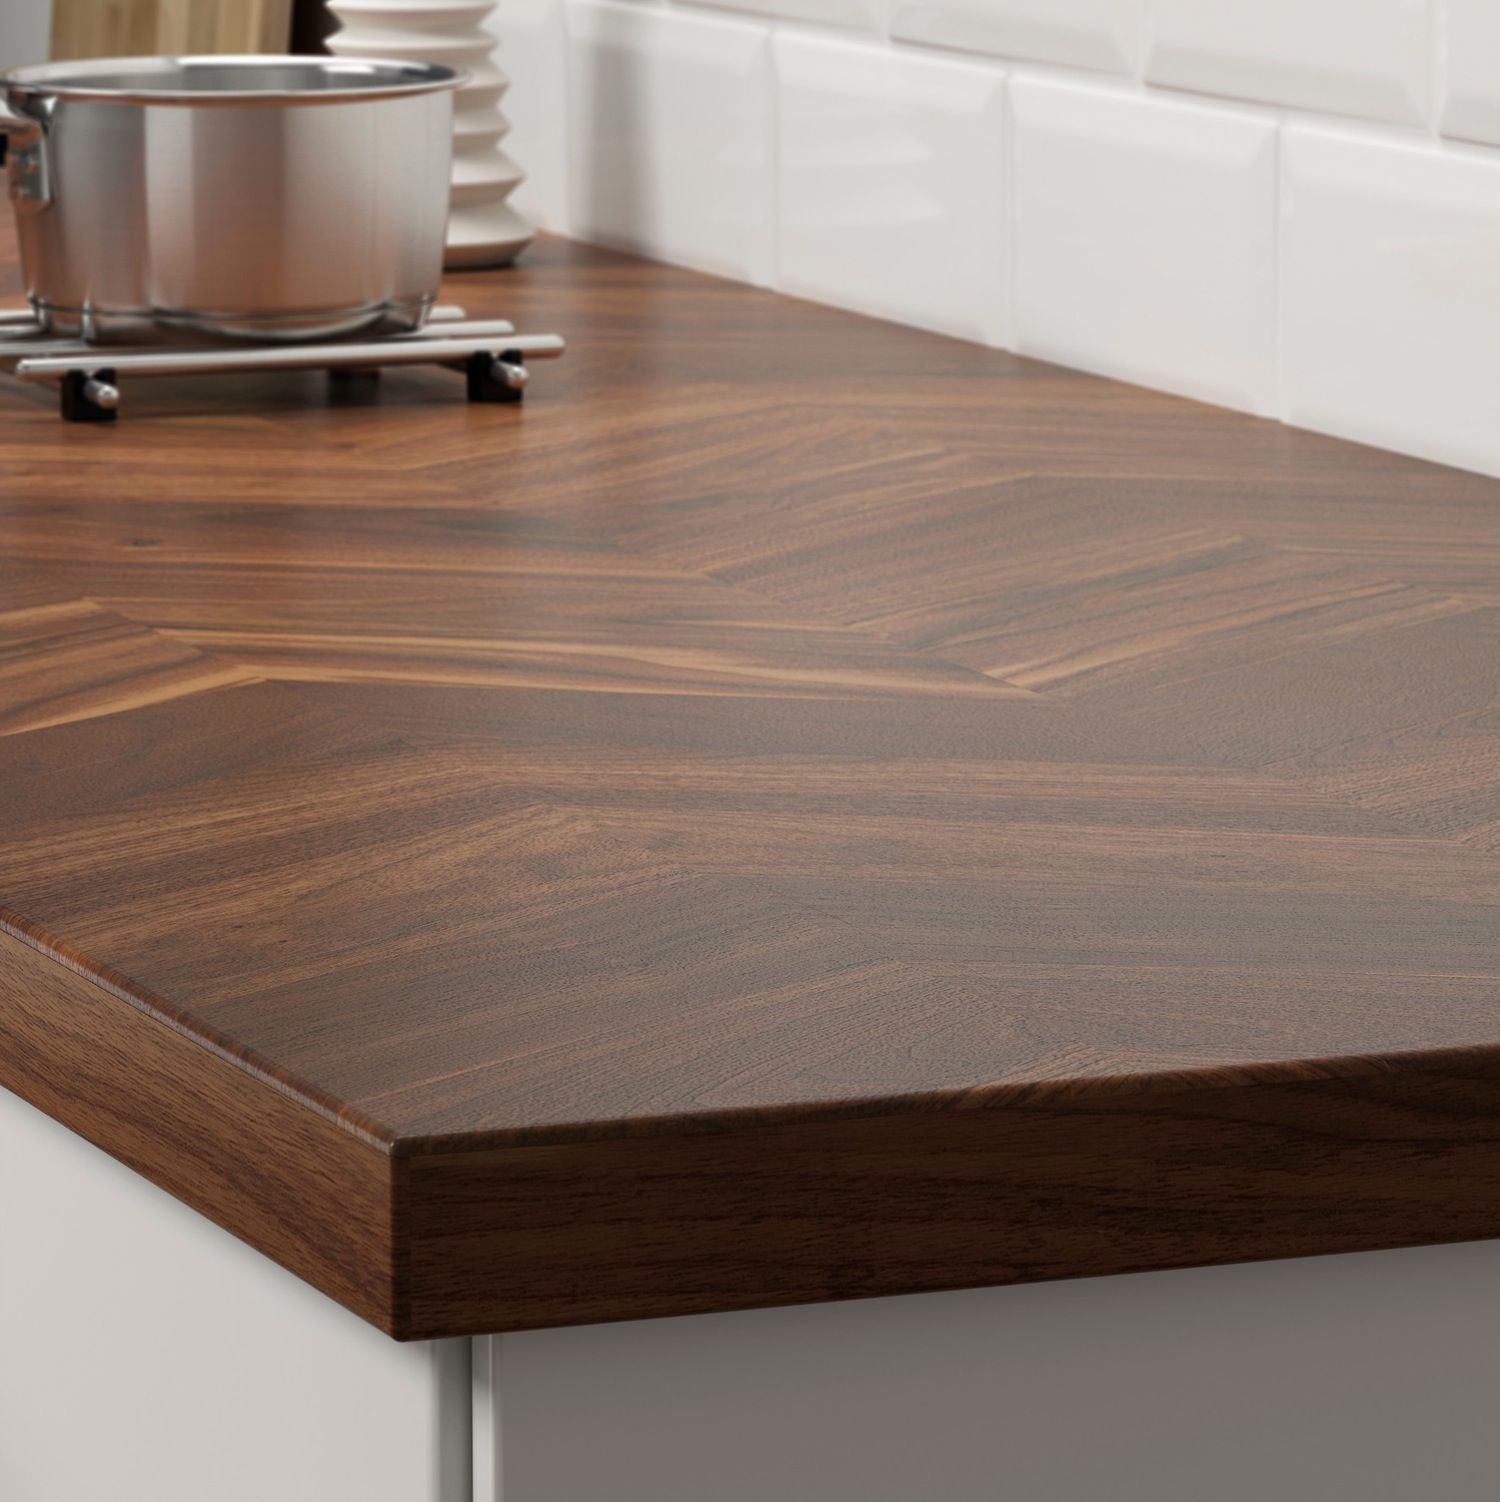 9 Barkaboda Wood Countertop With Images Karlby Countertop